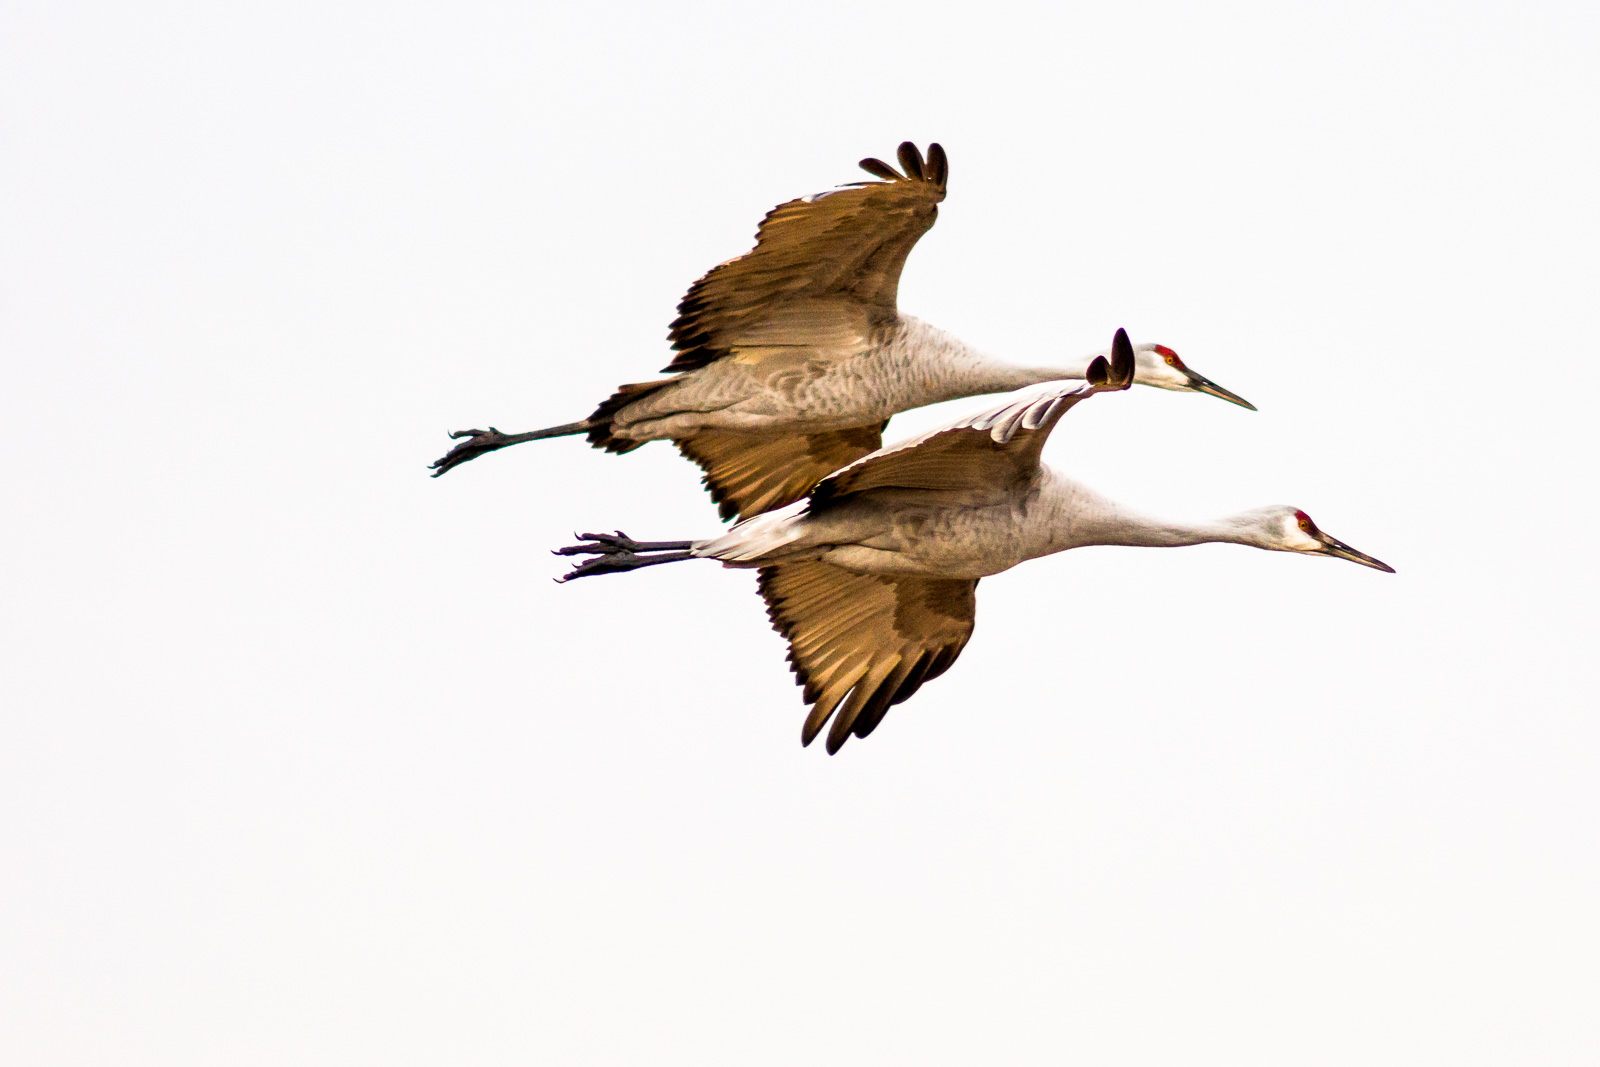 Sandhill cranes, Bosque del Apache National Wildlife Refuge, San Antonio, New Mexico